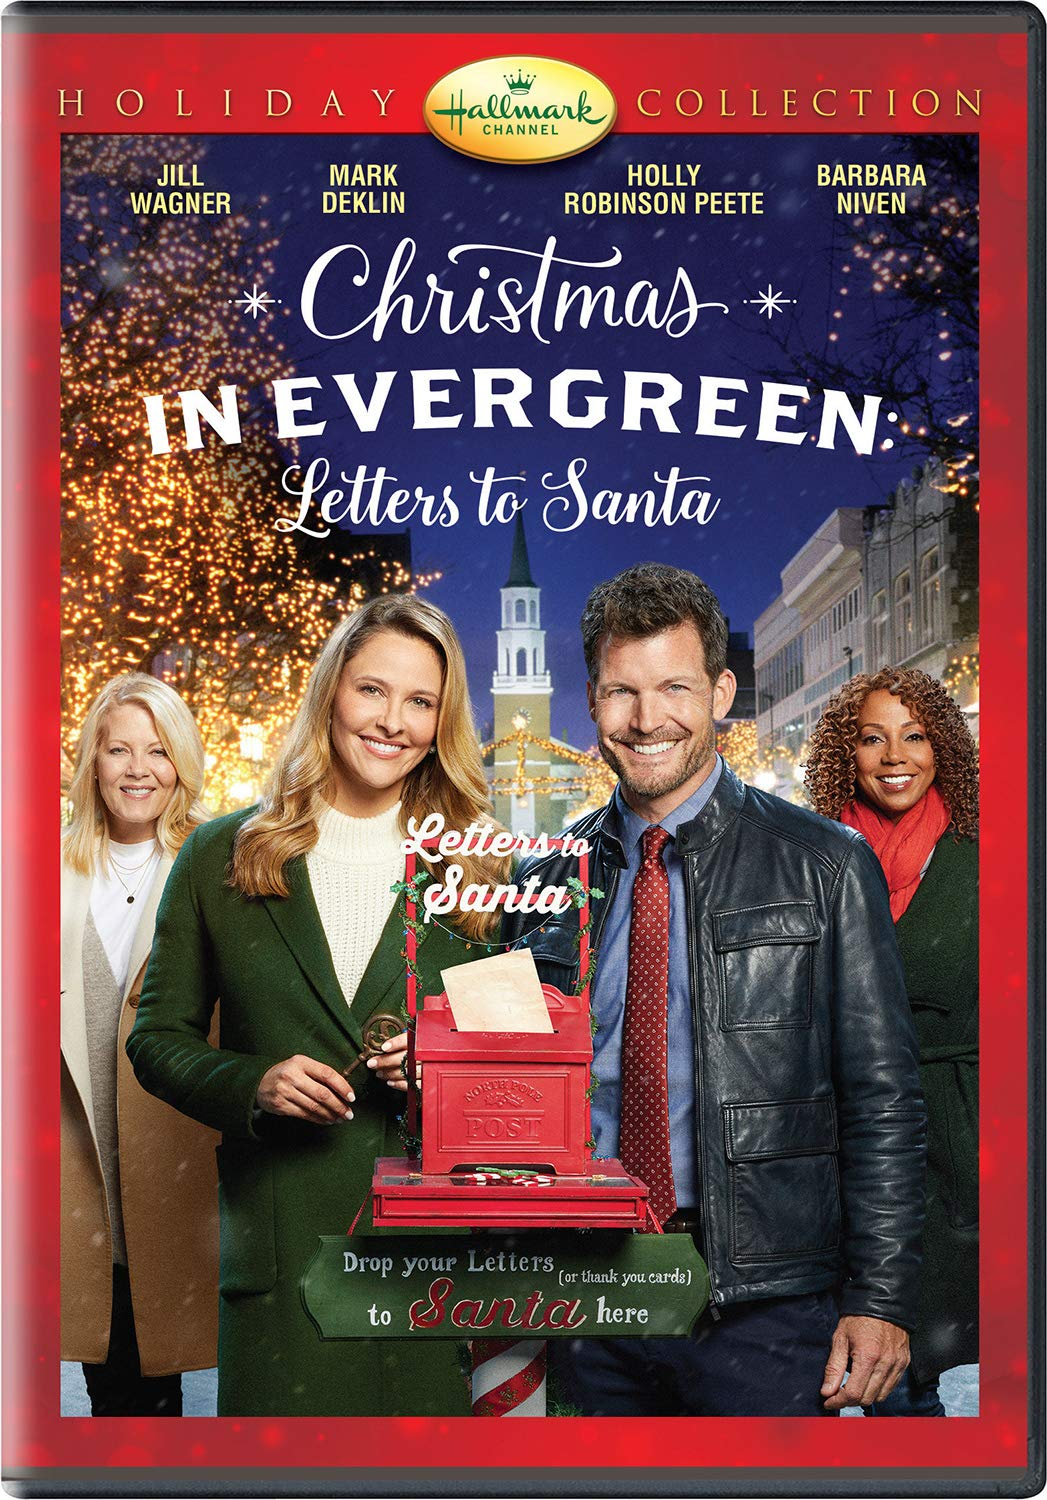 Christmas In Evergreen: Letters To Santa - New 2020 Amazon.com: Christmas In Evergreen: Letters To Santa: Jill Wagner